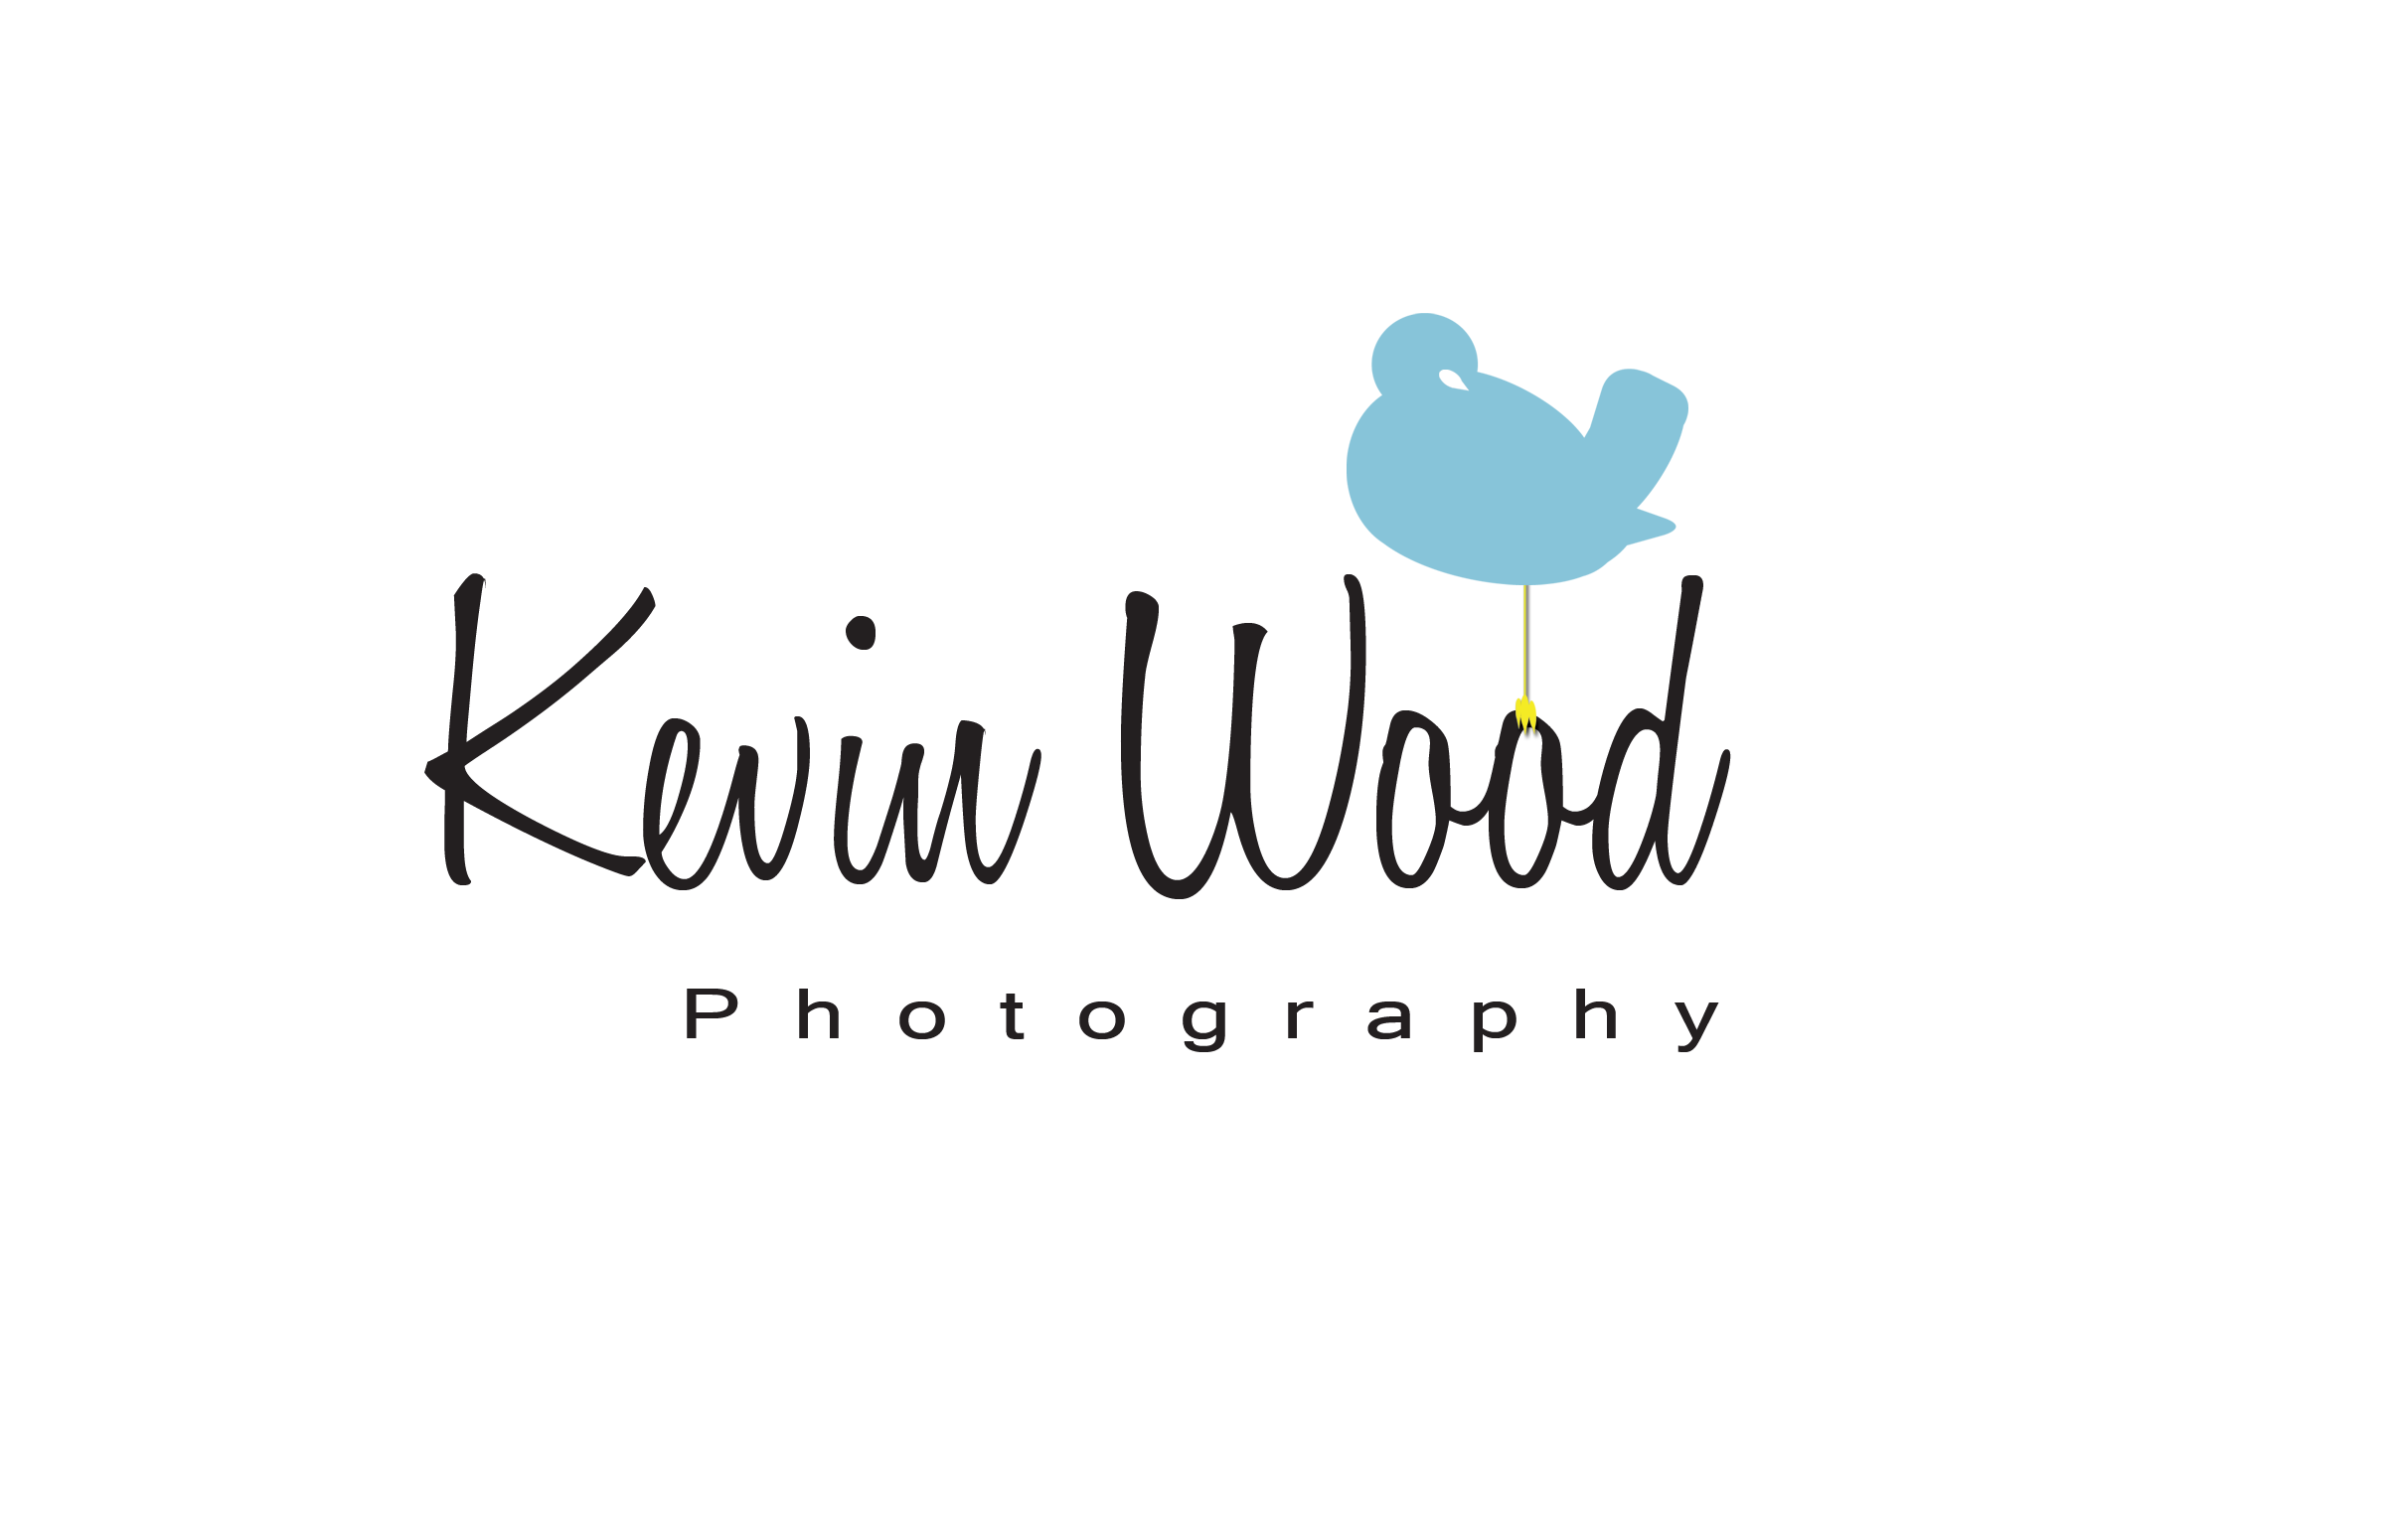 Kevin Wood Photography